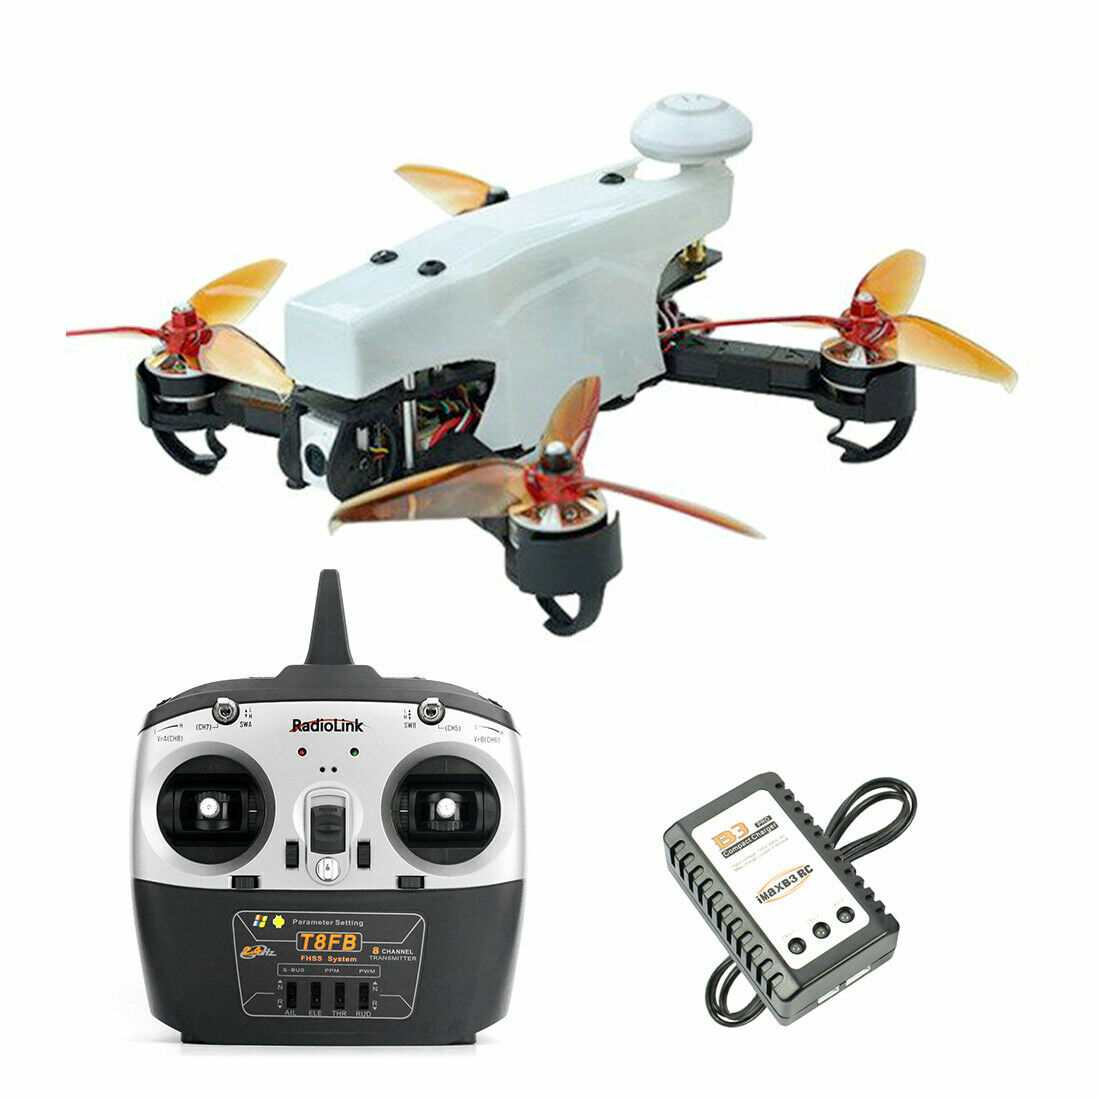 JMT 210 FPV Racing Drone Quadcopter RTF with Radiolink T8FB TX RX High Speed